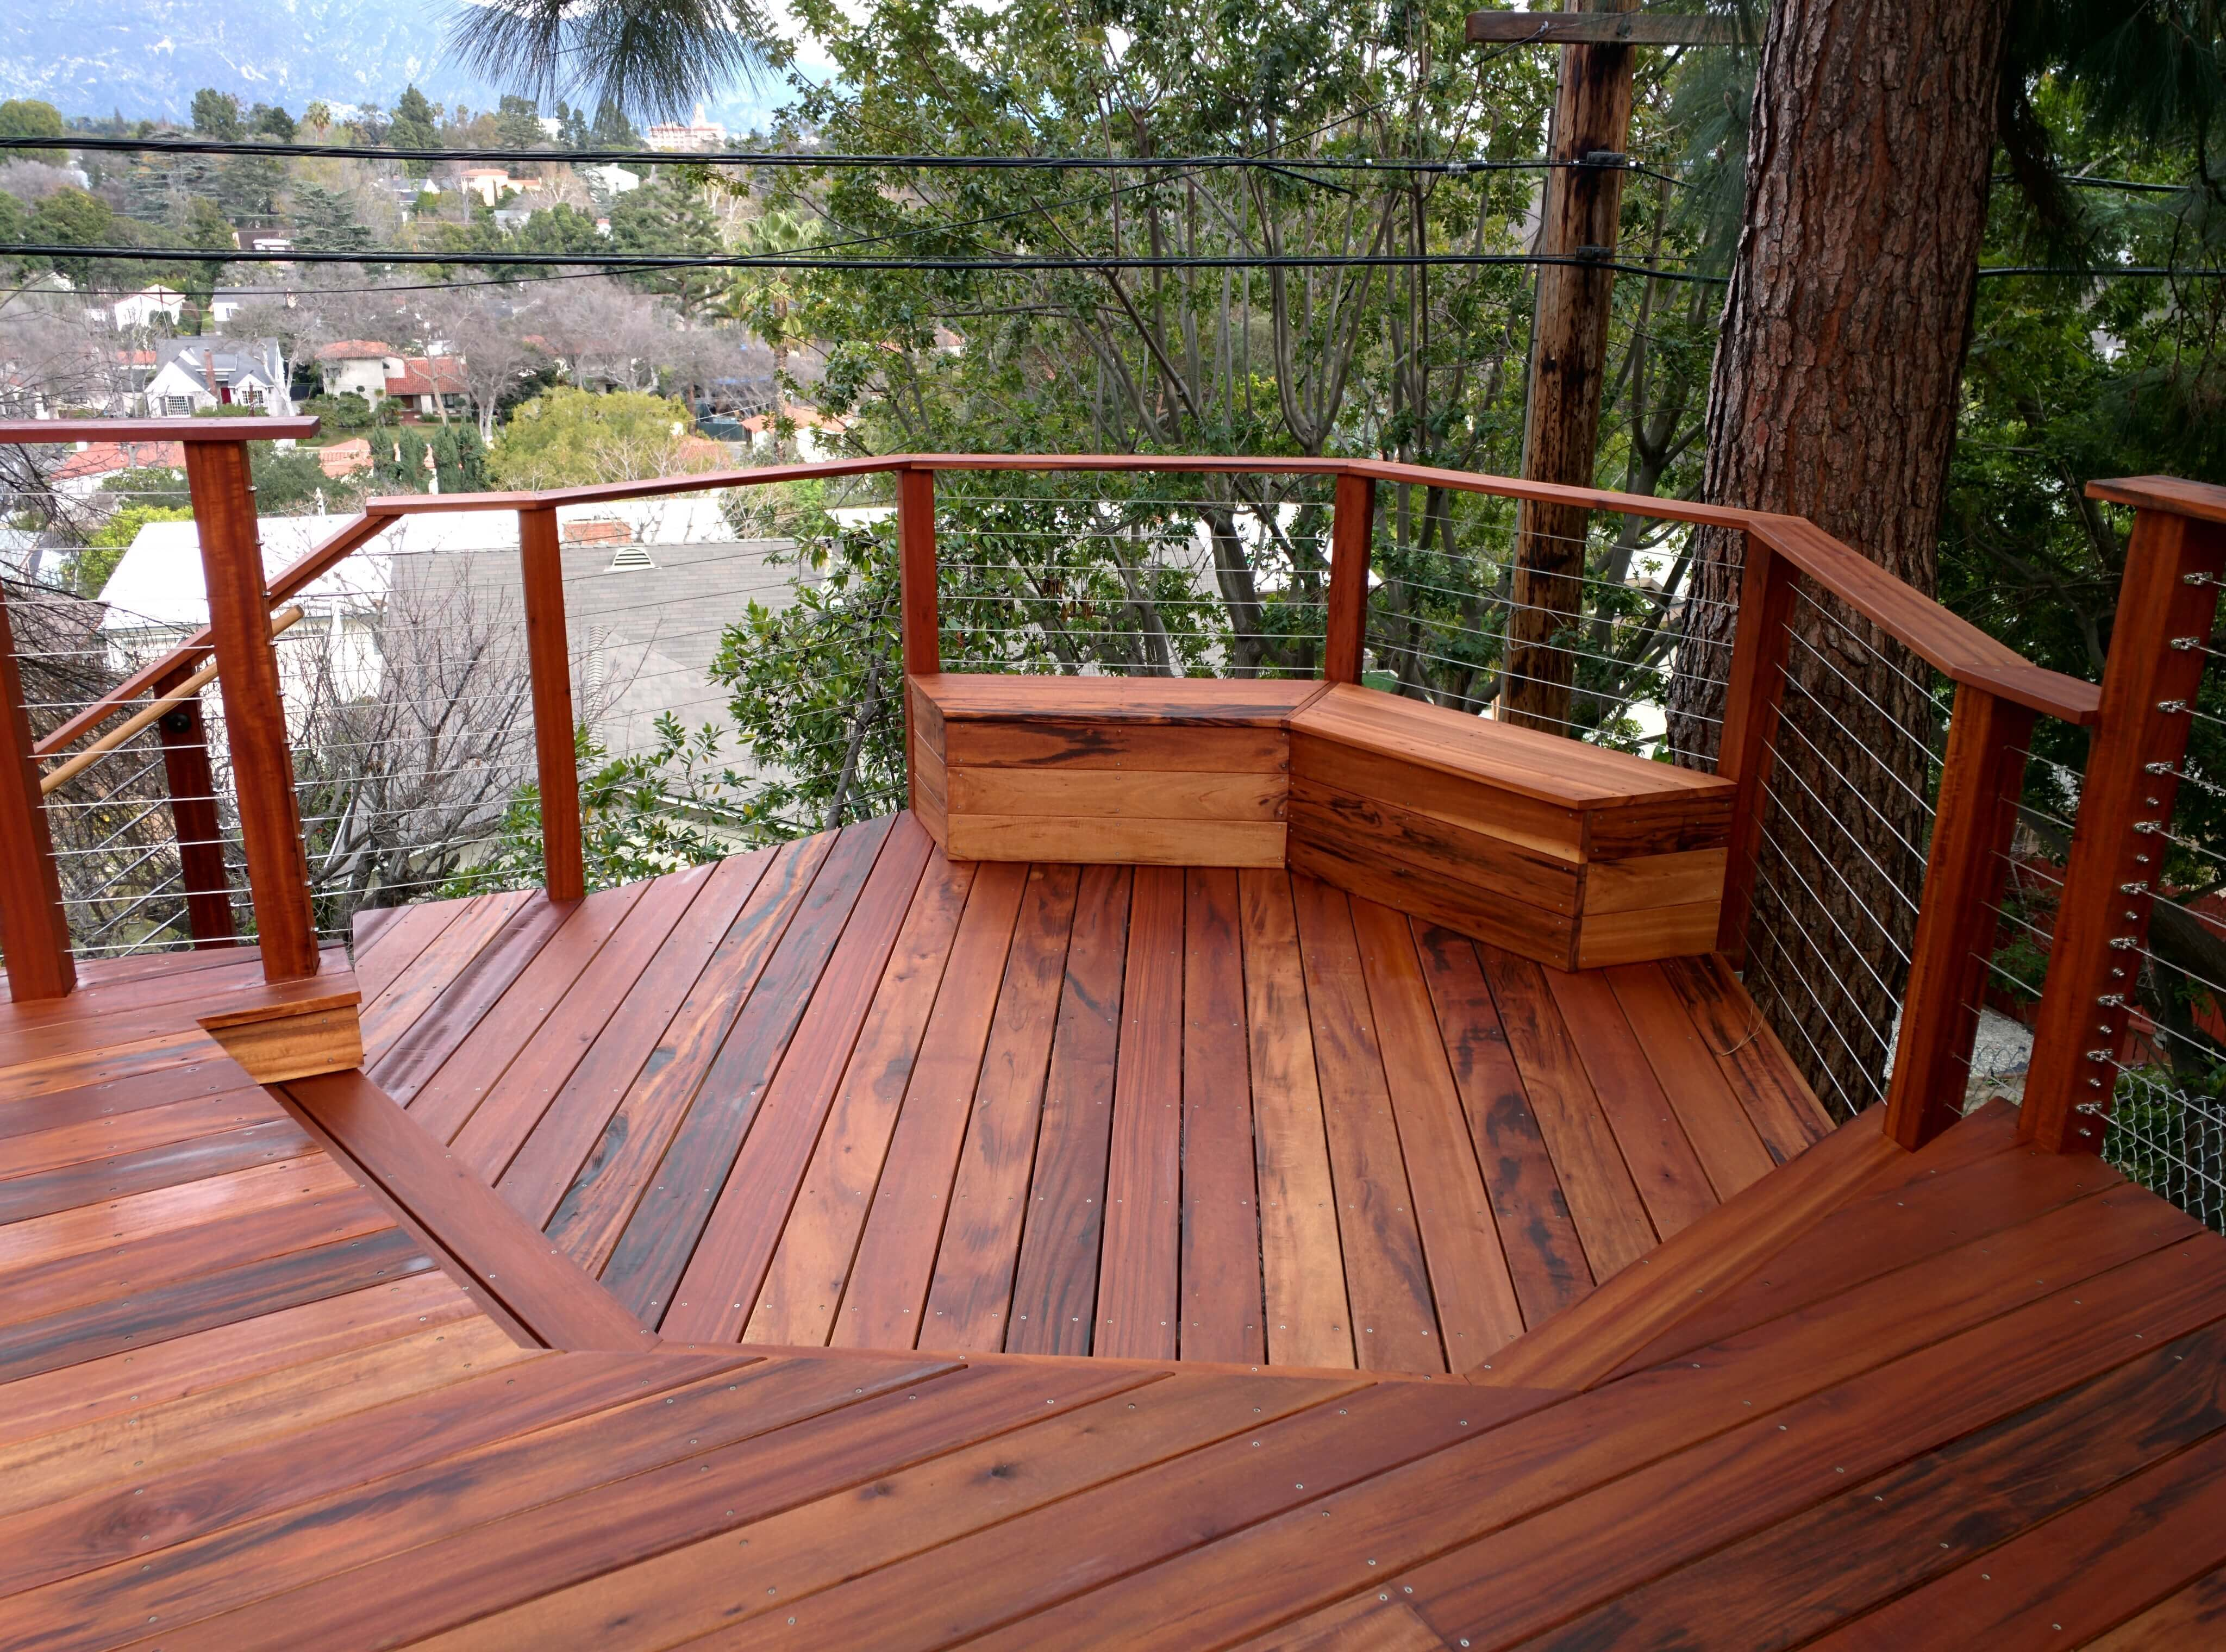 Composite Material for Decks | Deck Board Options | Tigerwood Decking